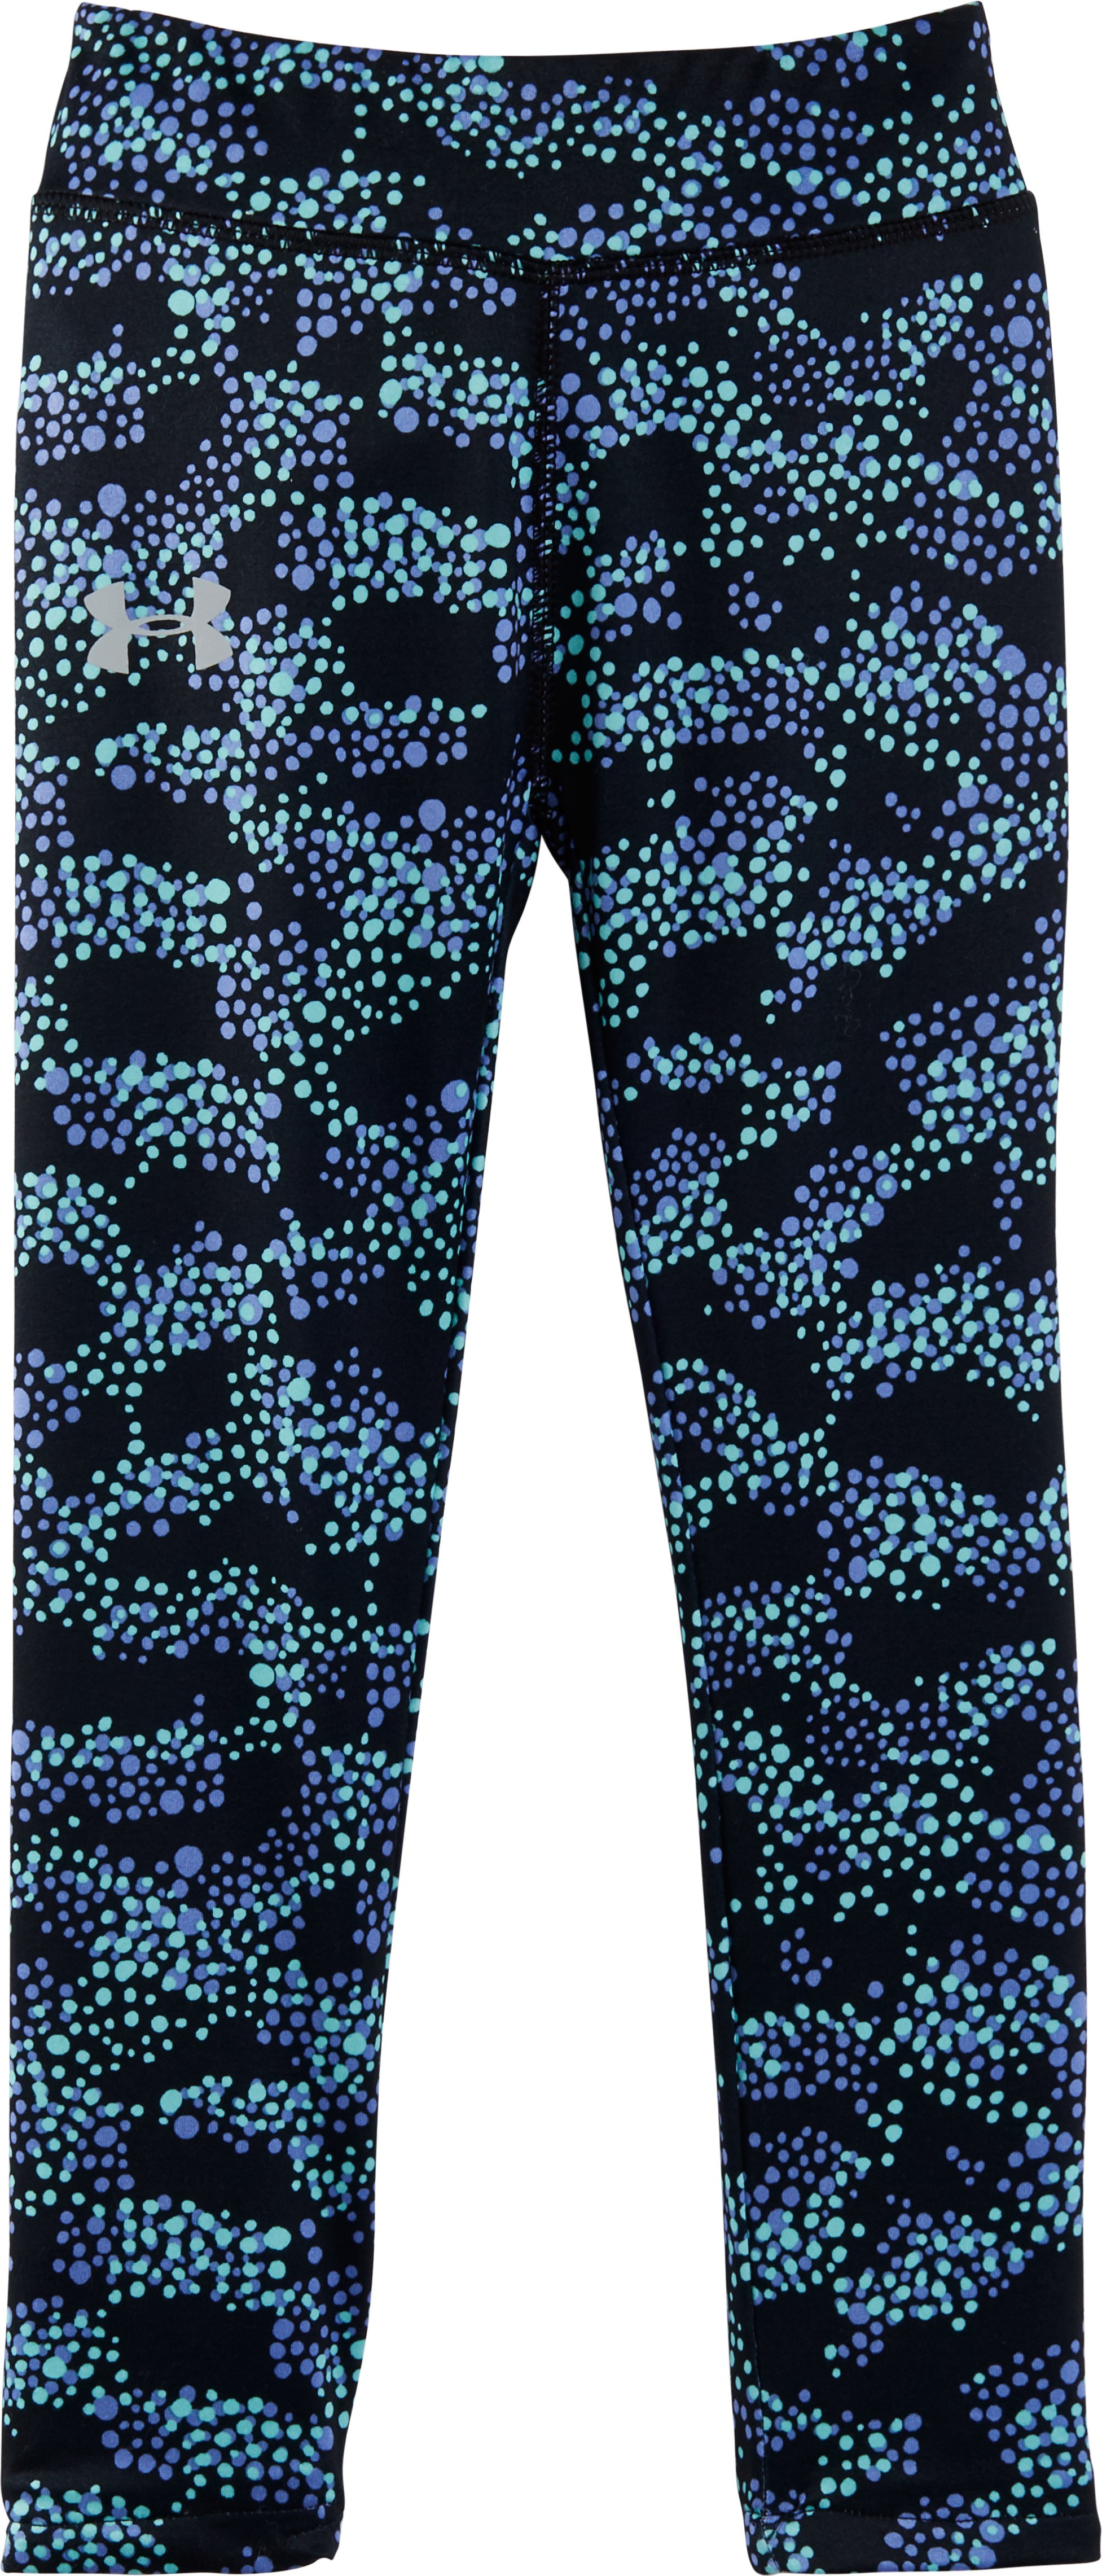 Girls' Pre-School UA Galaxy Leggings, Black